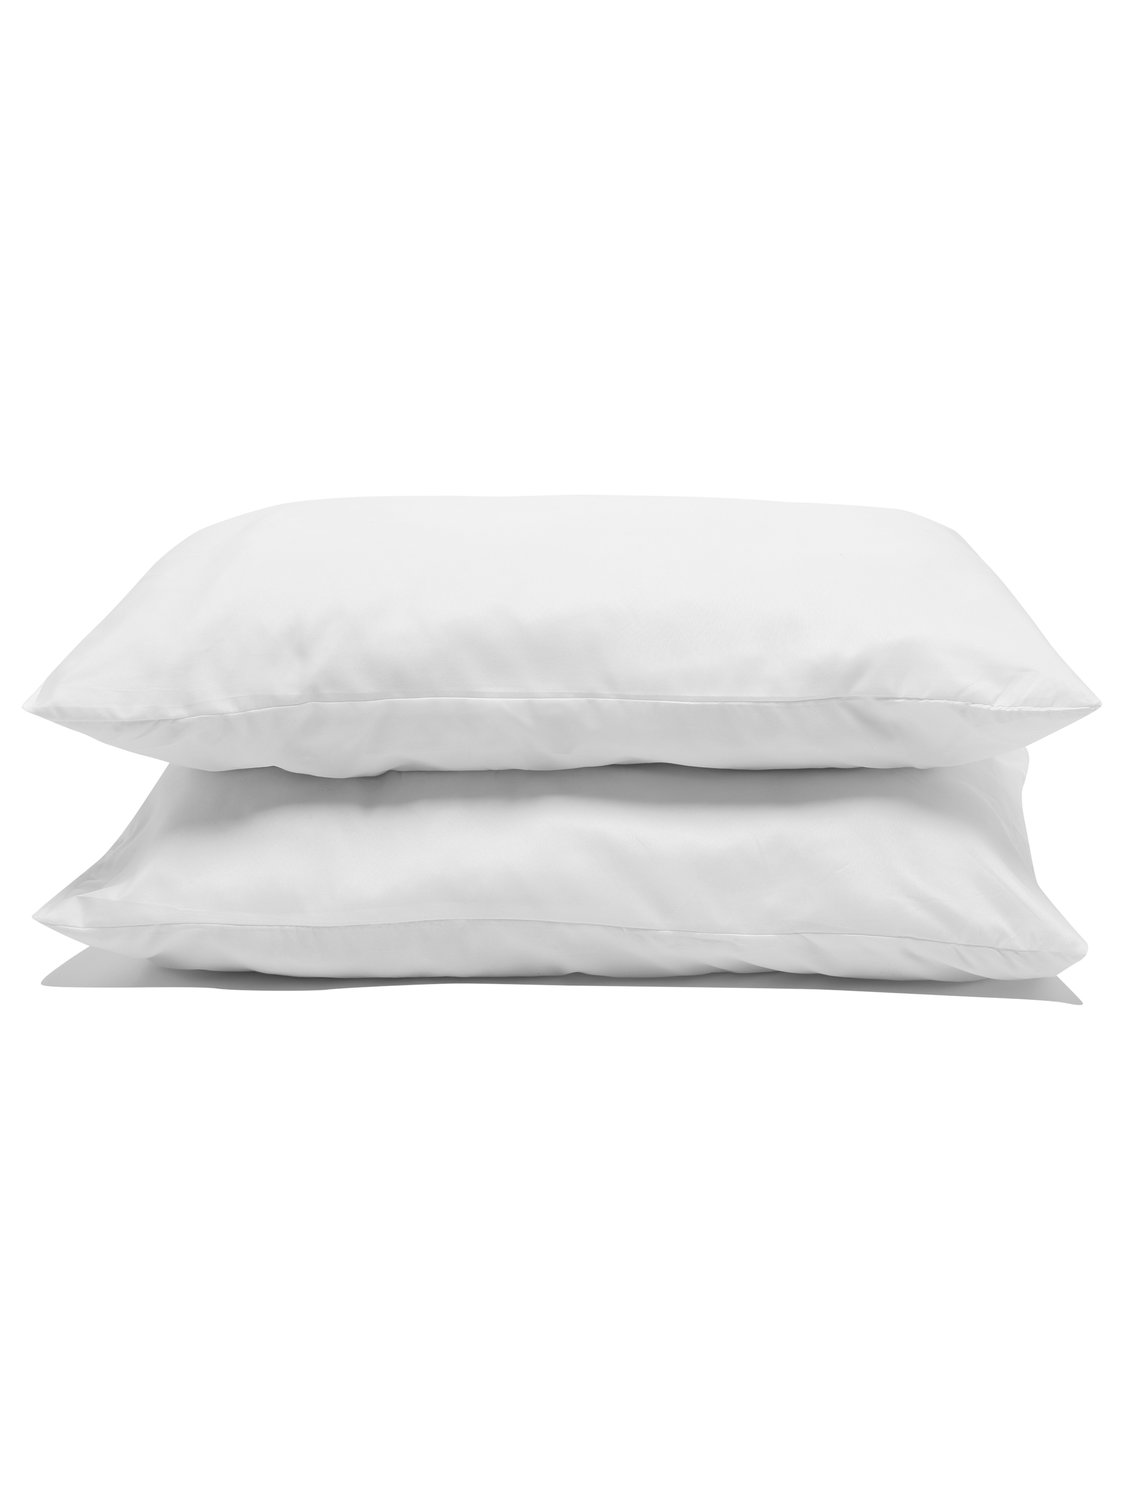 Image of Ultra Soft Comfort Washable peach soft pillow - 2 pack - White